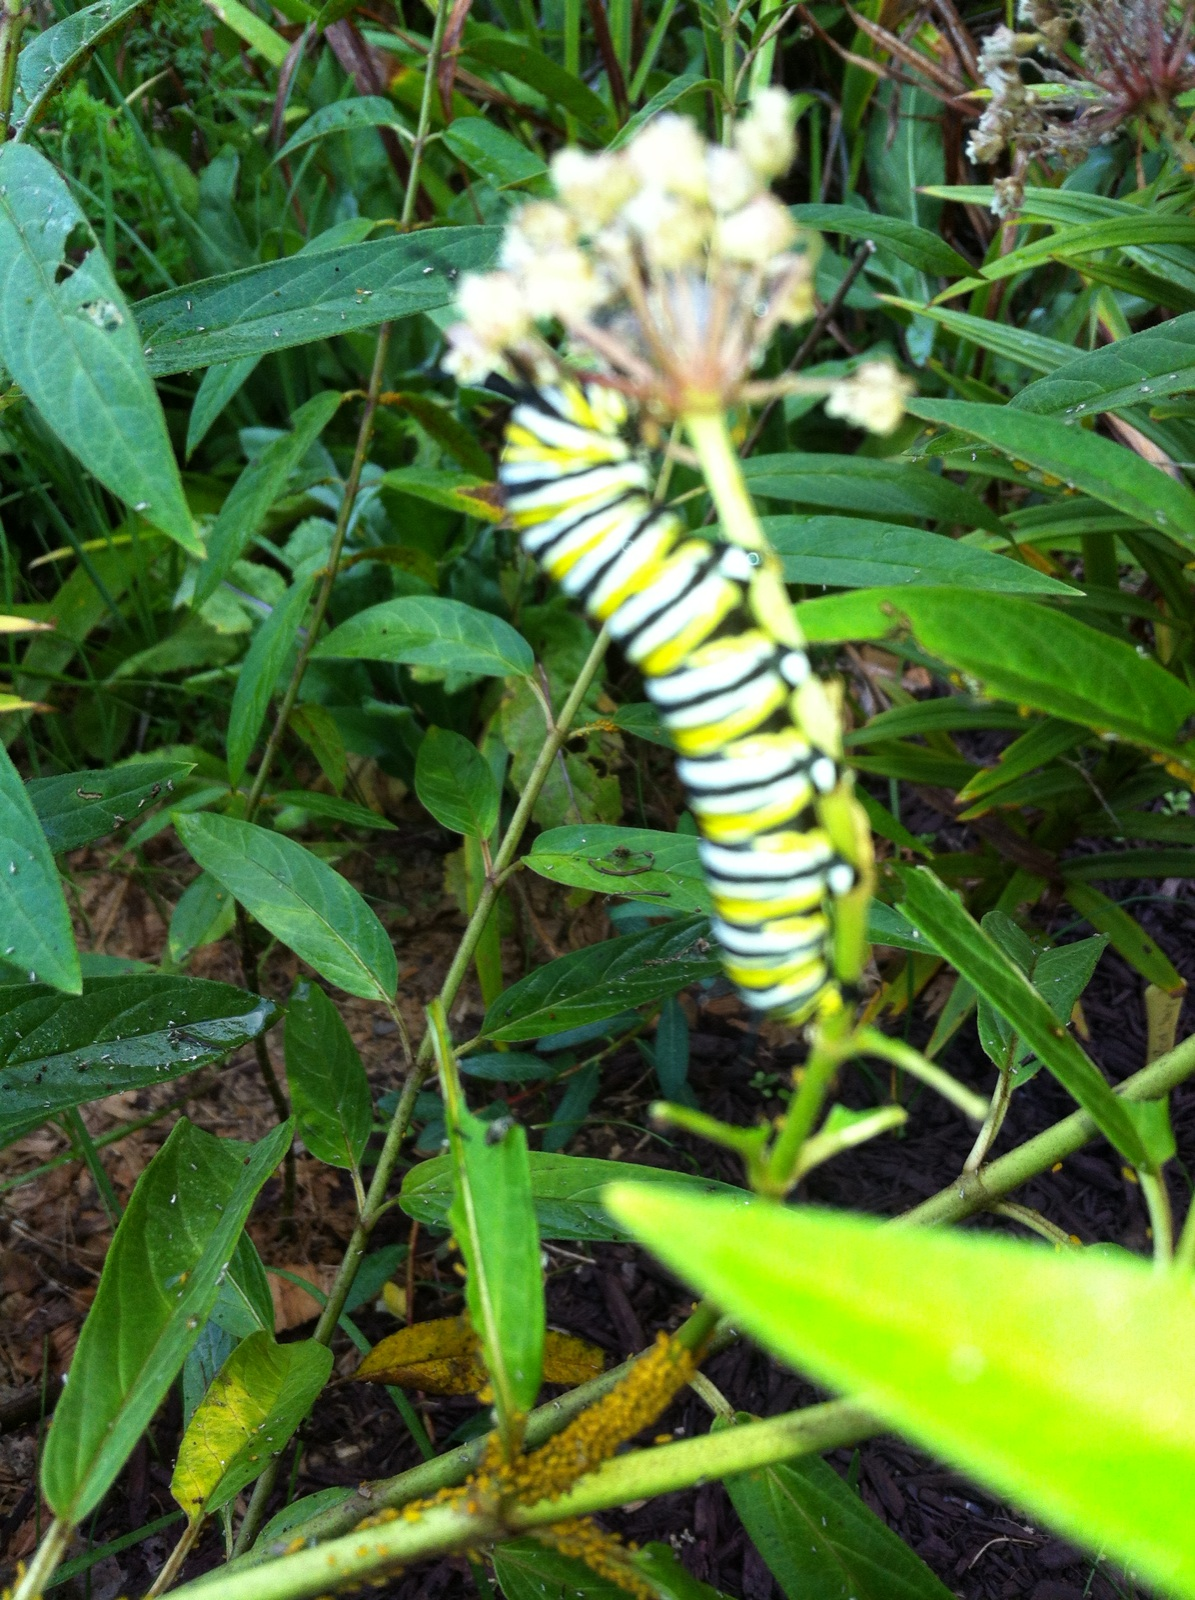 milkweed report Common milkweed is the main food plant for monarch butterfly larvae  flowers  in one umbel the average flower number per umbel has been reported as 76.